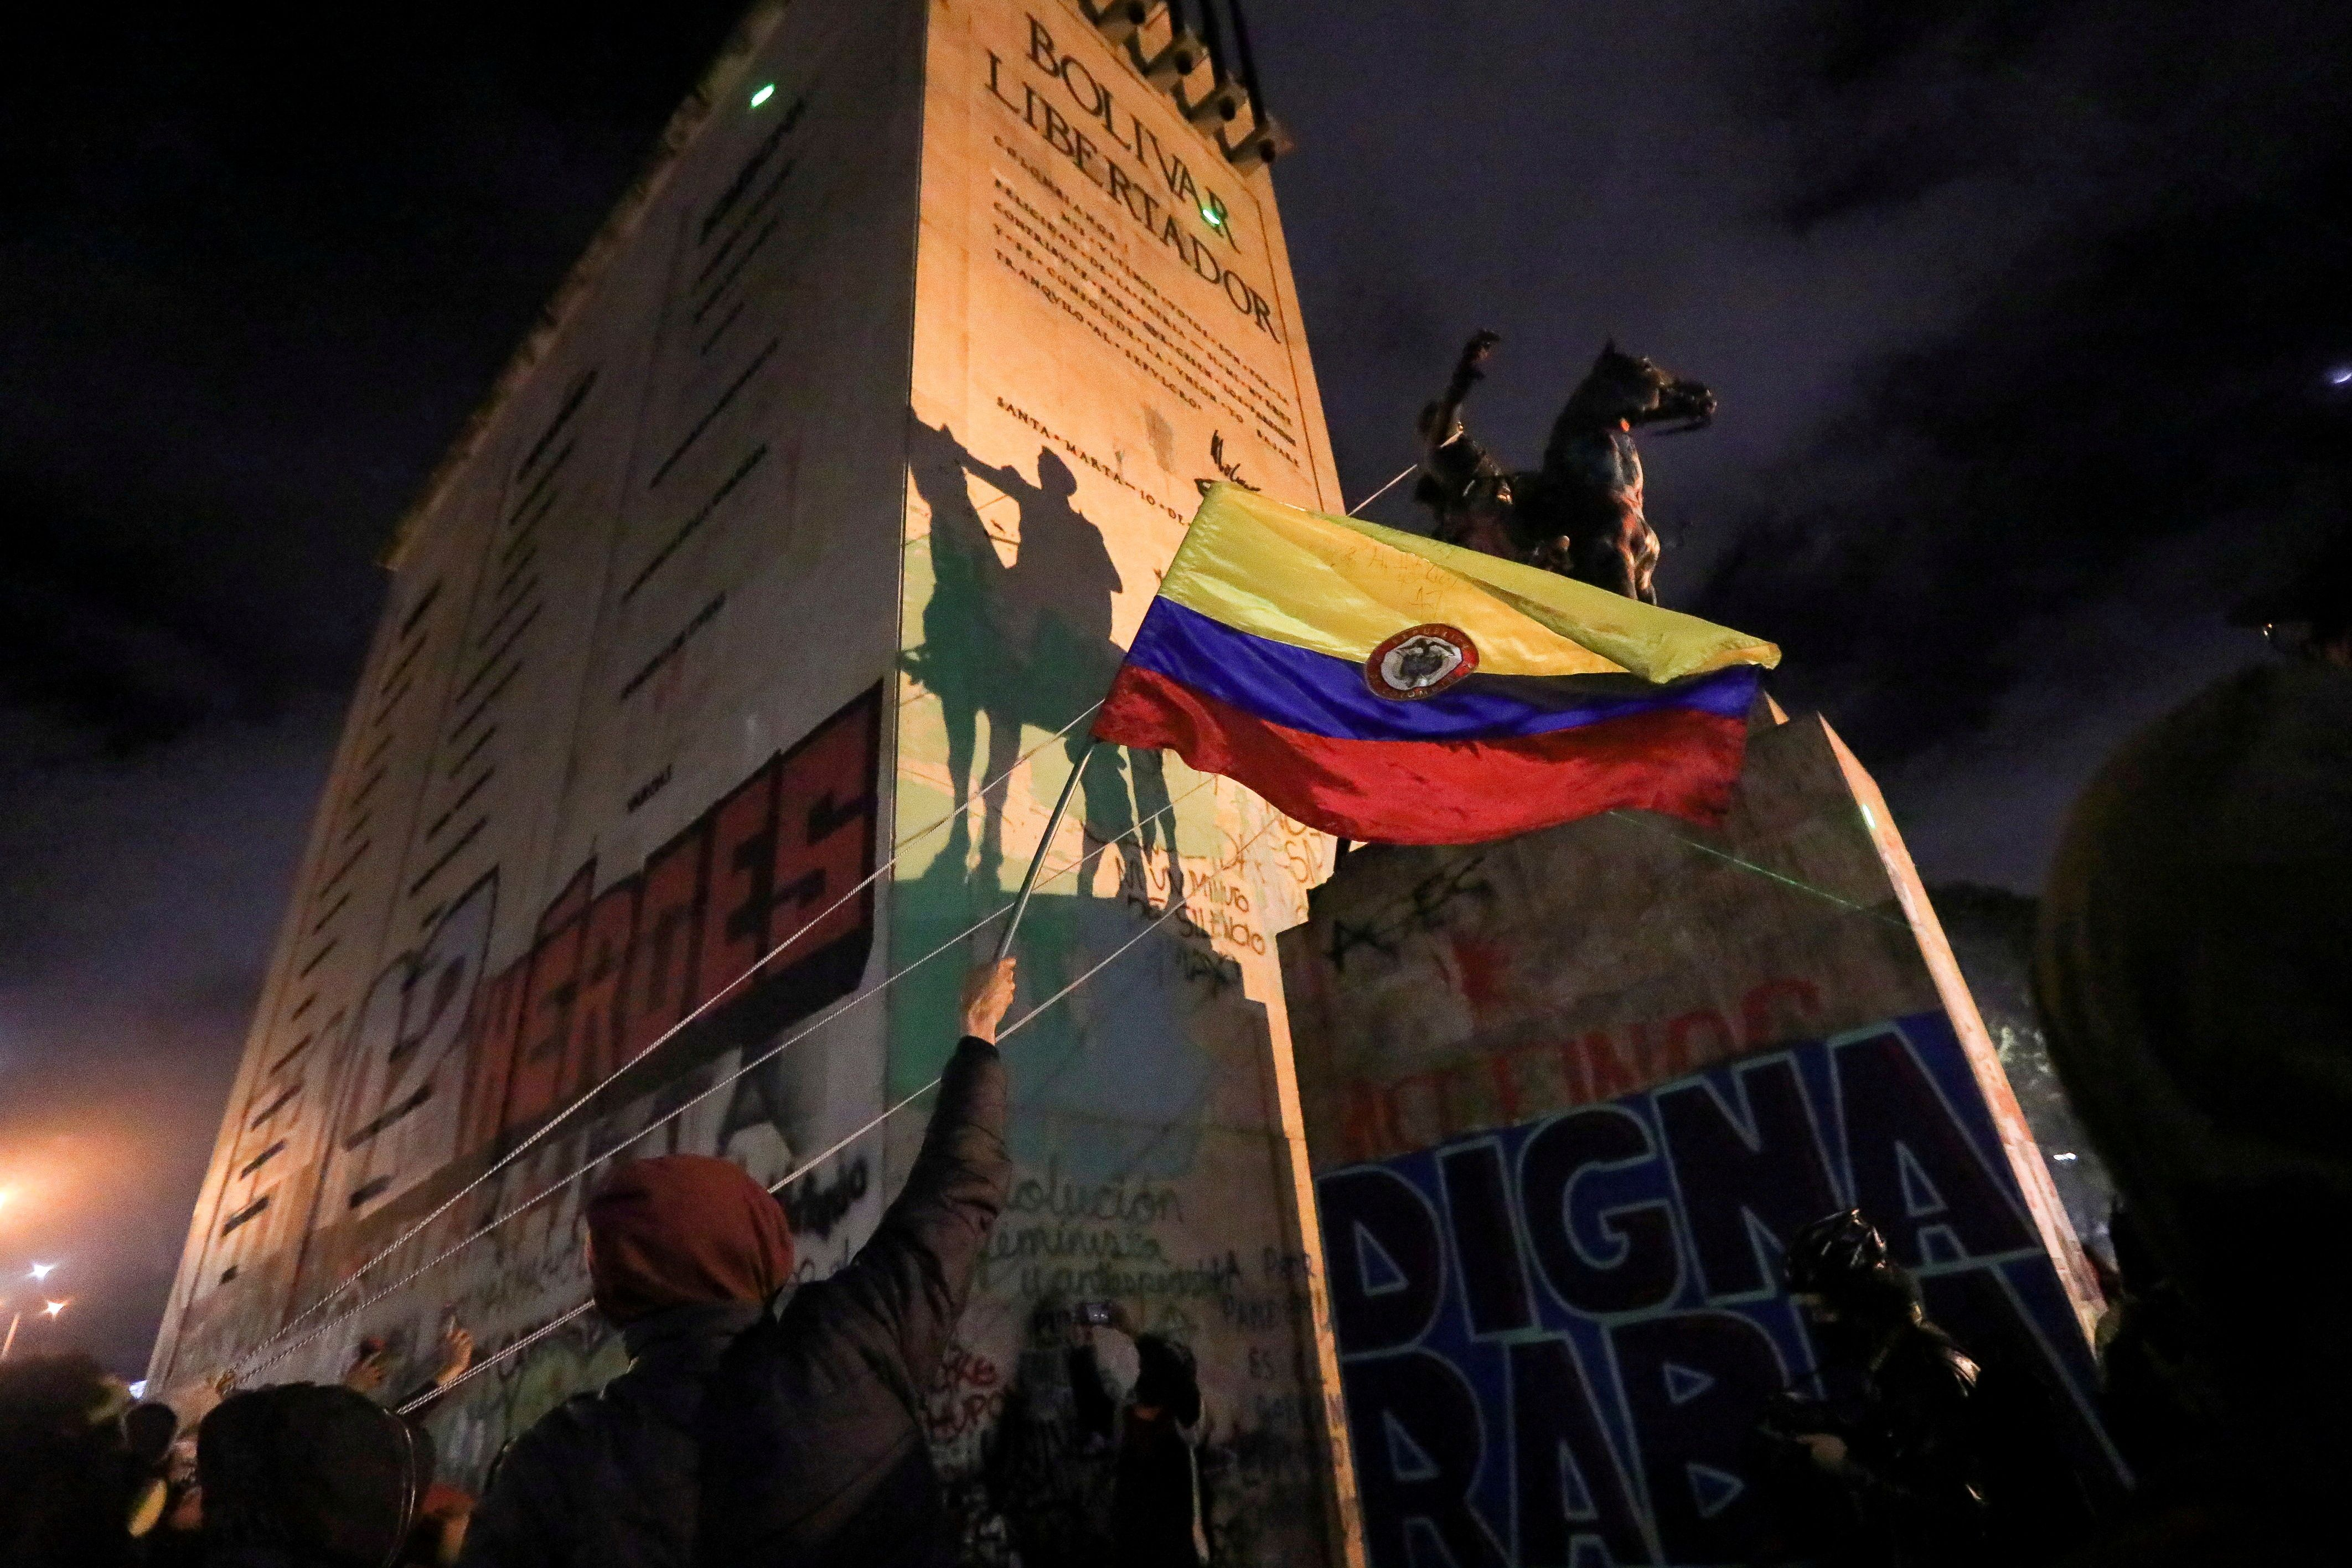 FILE PHOTO: People try to topple the statue of South American independence leader Simon Bolivar during a protest against sexual assault by the police and the excess of public force against peaceful protests, in Bogota, Colombia, May 15, 2021. REUTERS/Luisa Gonzalez/File Photo